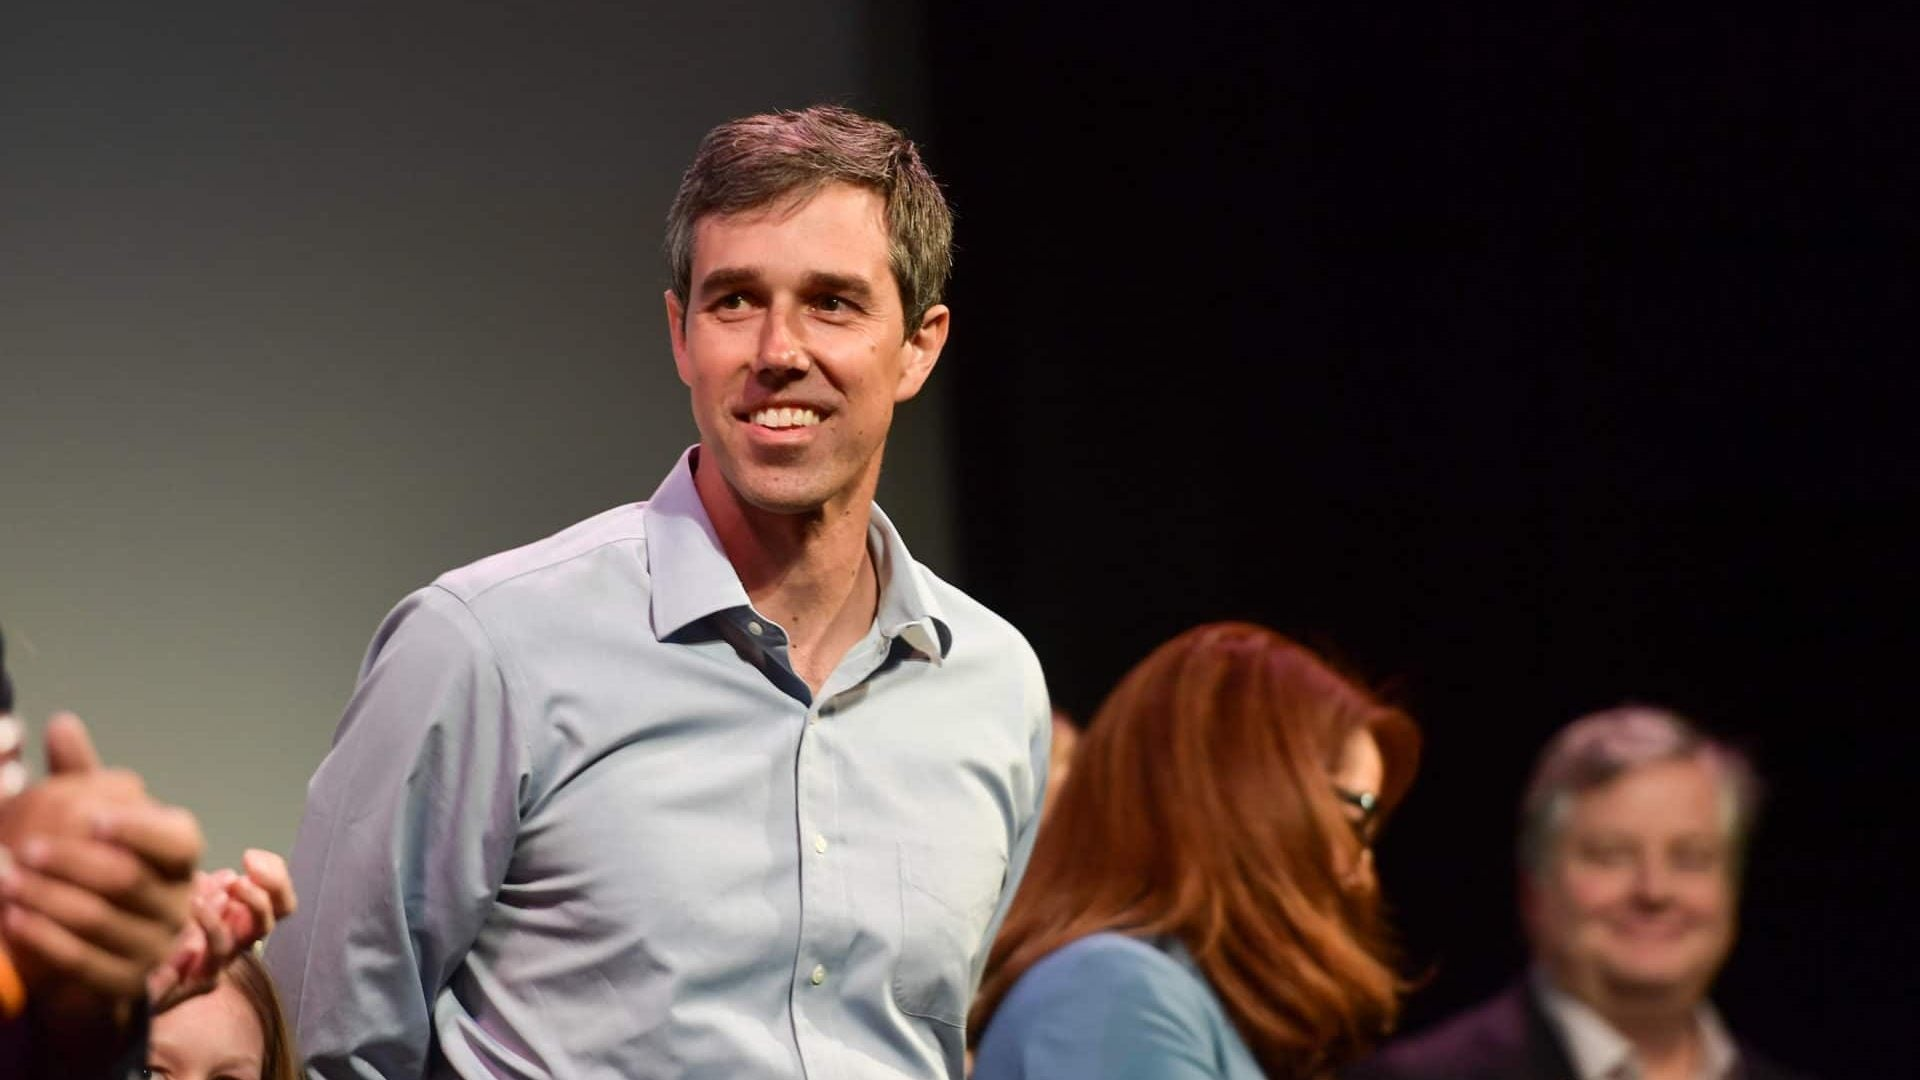 Beto O'Rourke Joins Crowded Democratic Field For 2020 Presidential Election